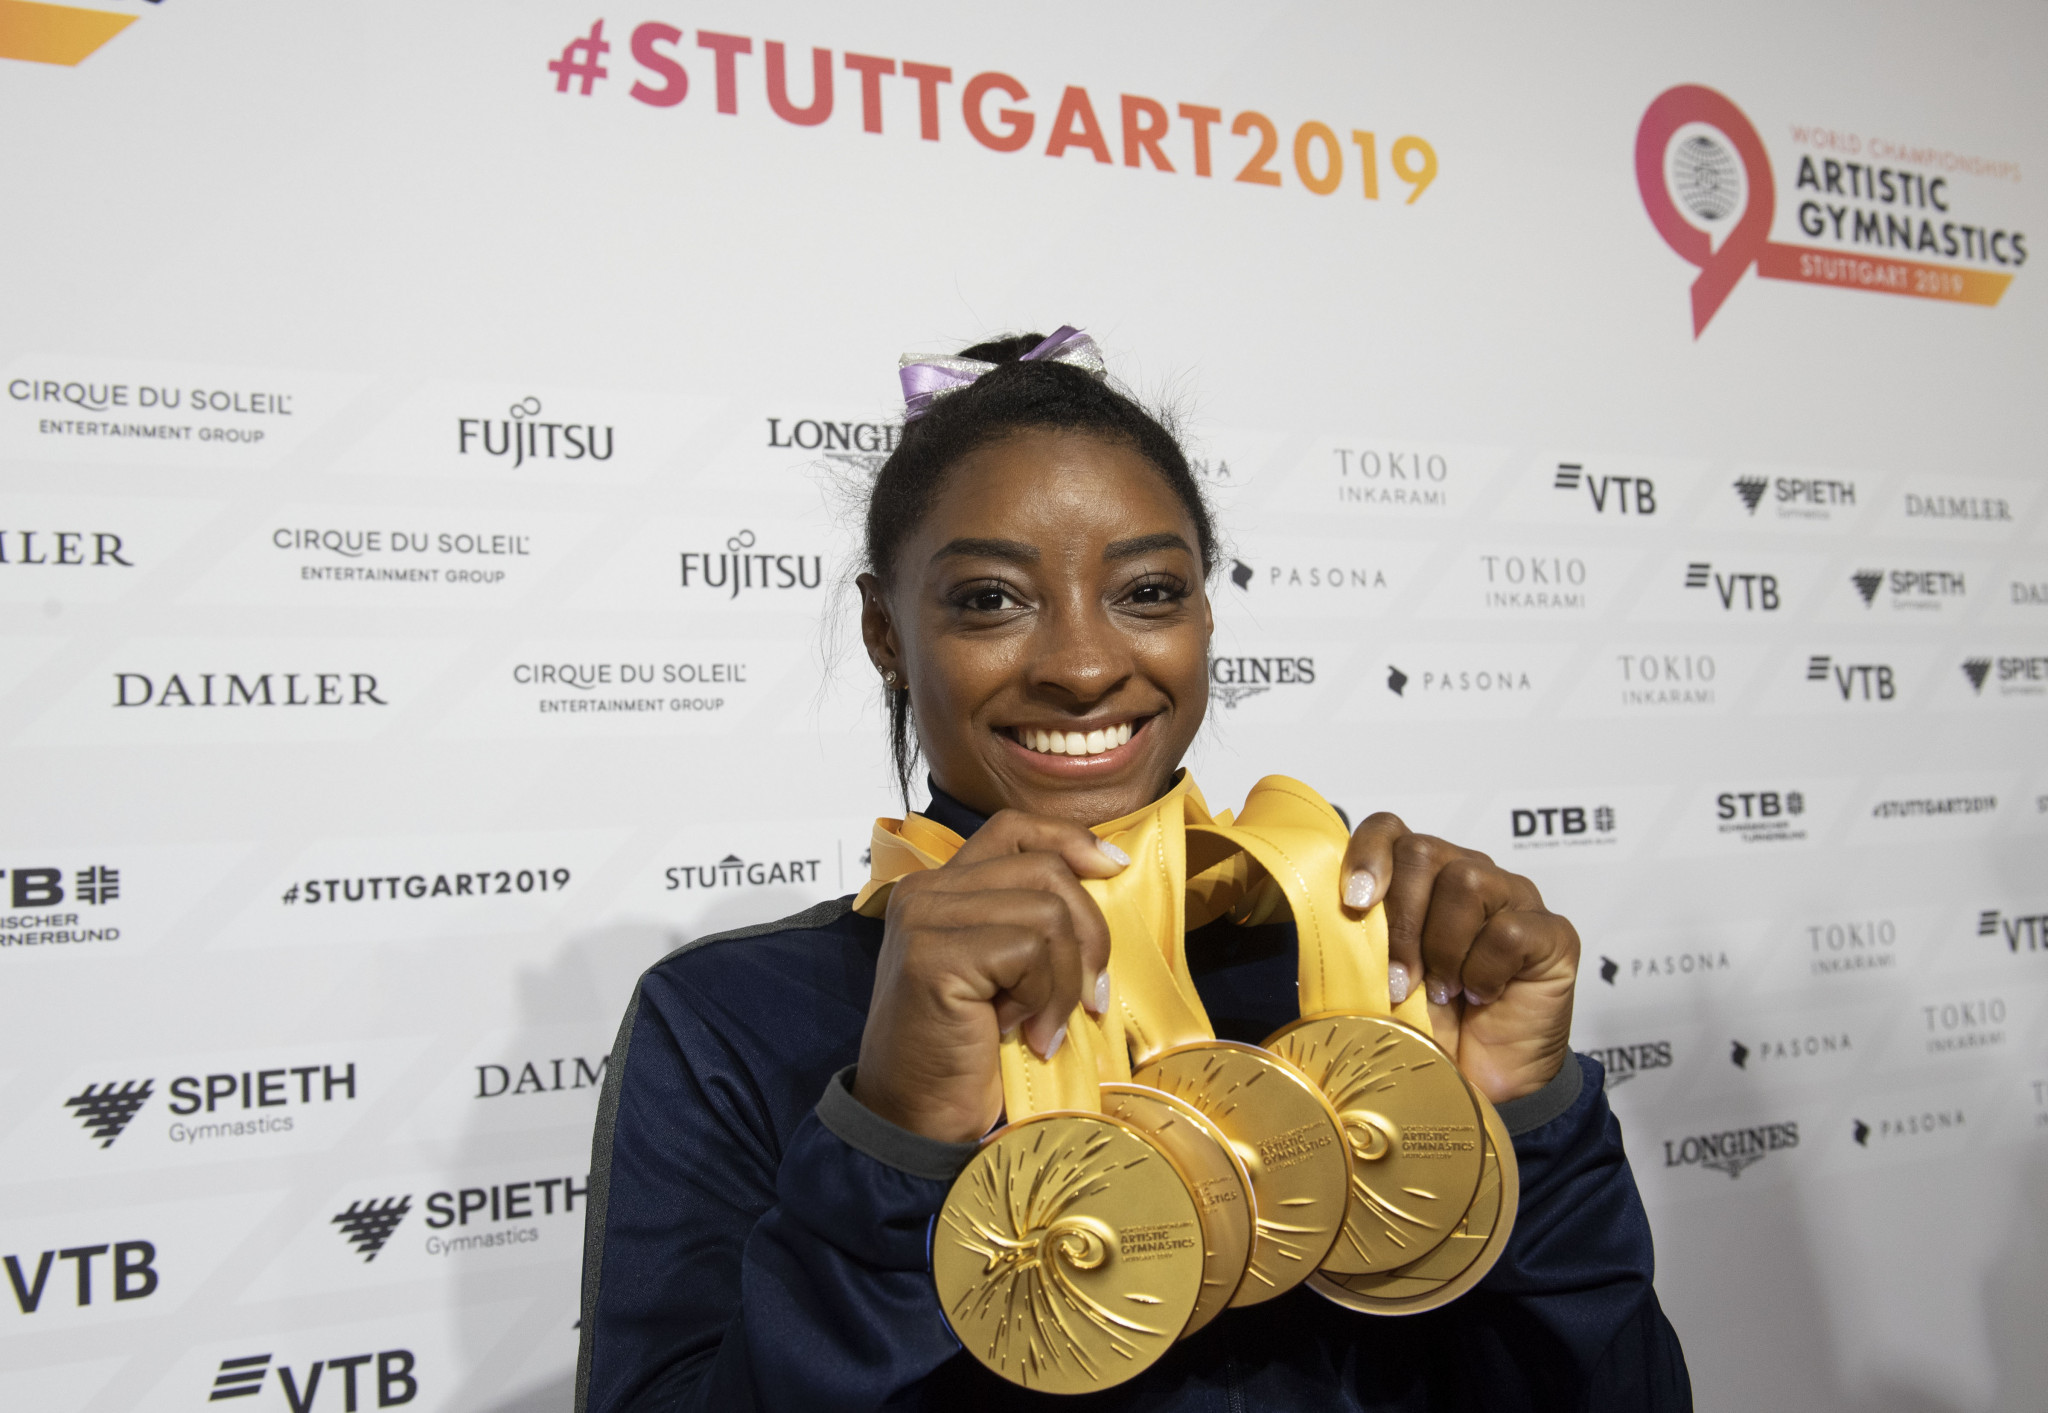 Simone Biles won five gold medals at the World Championships in 2019 ©Getty Images